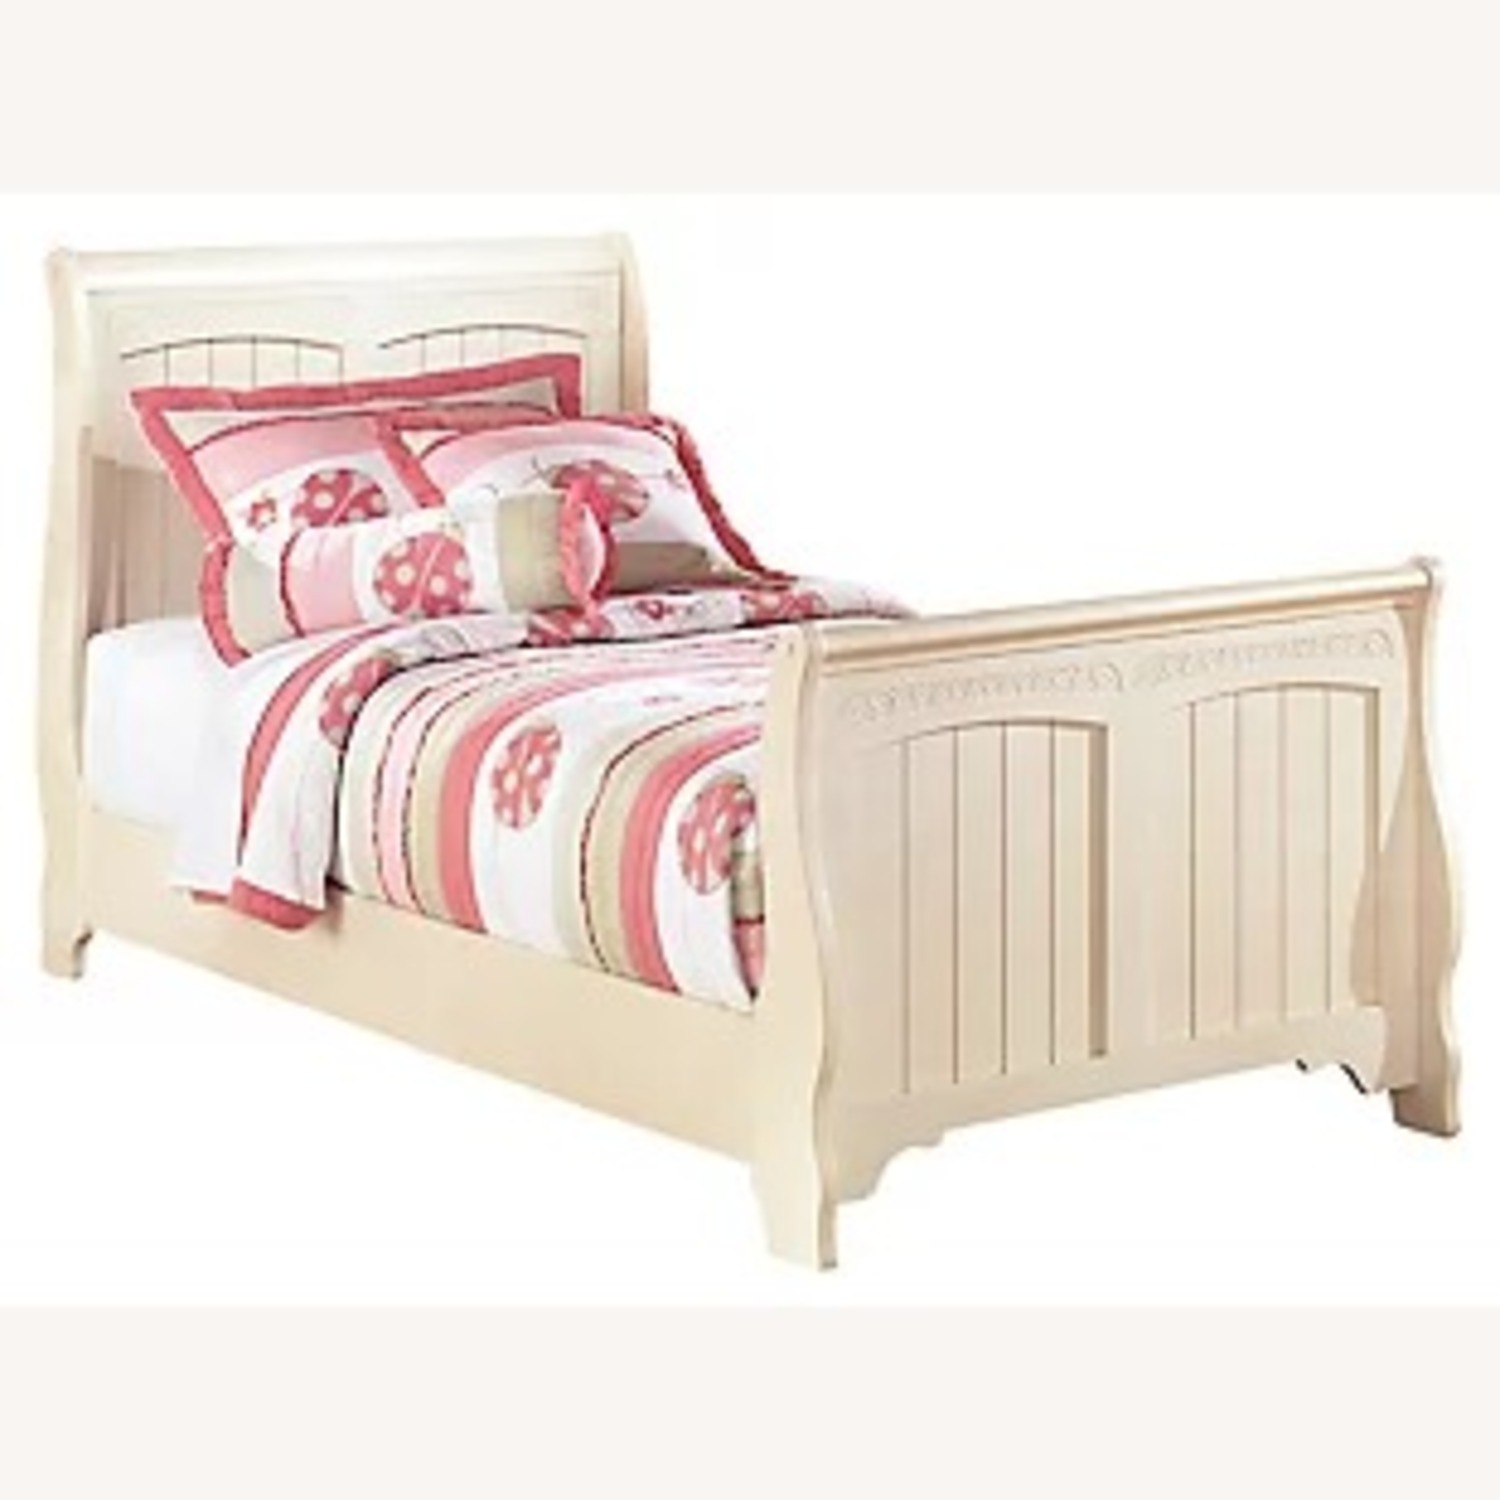 Ashely Furniture Twin Bed Frame - image-6